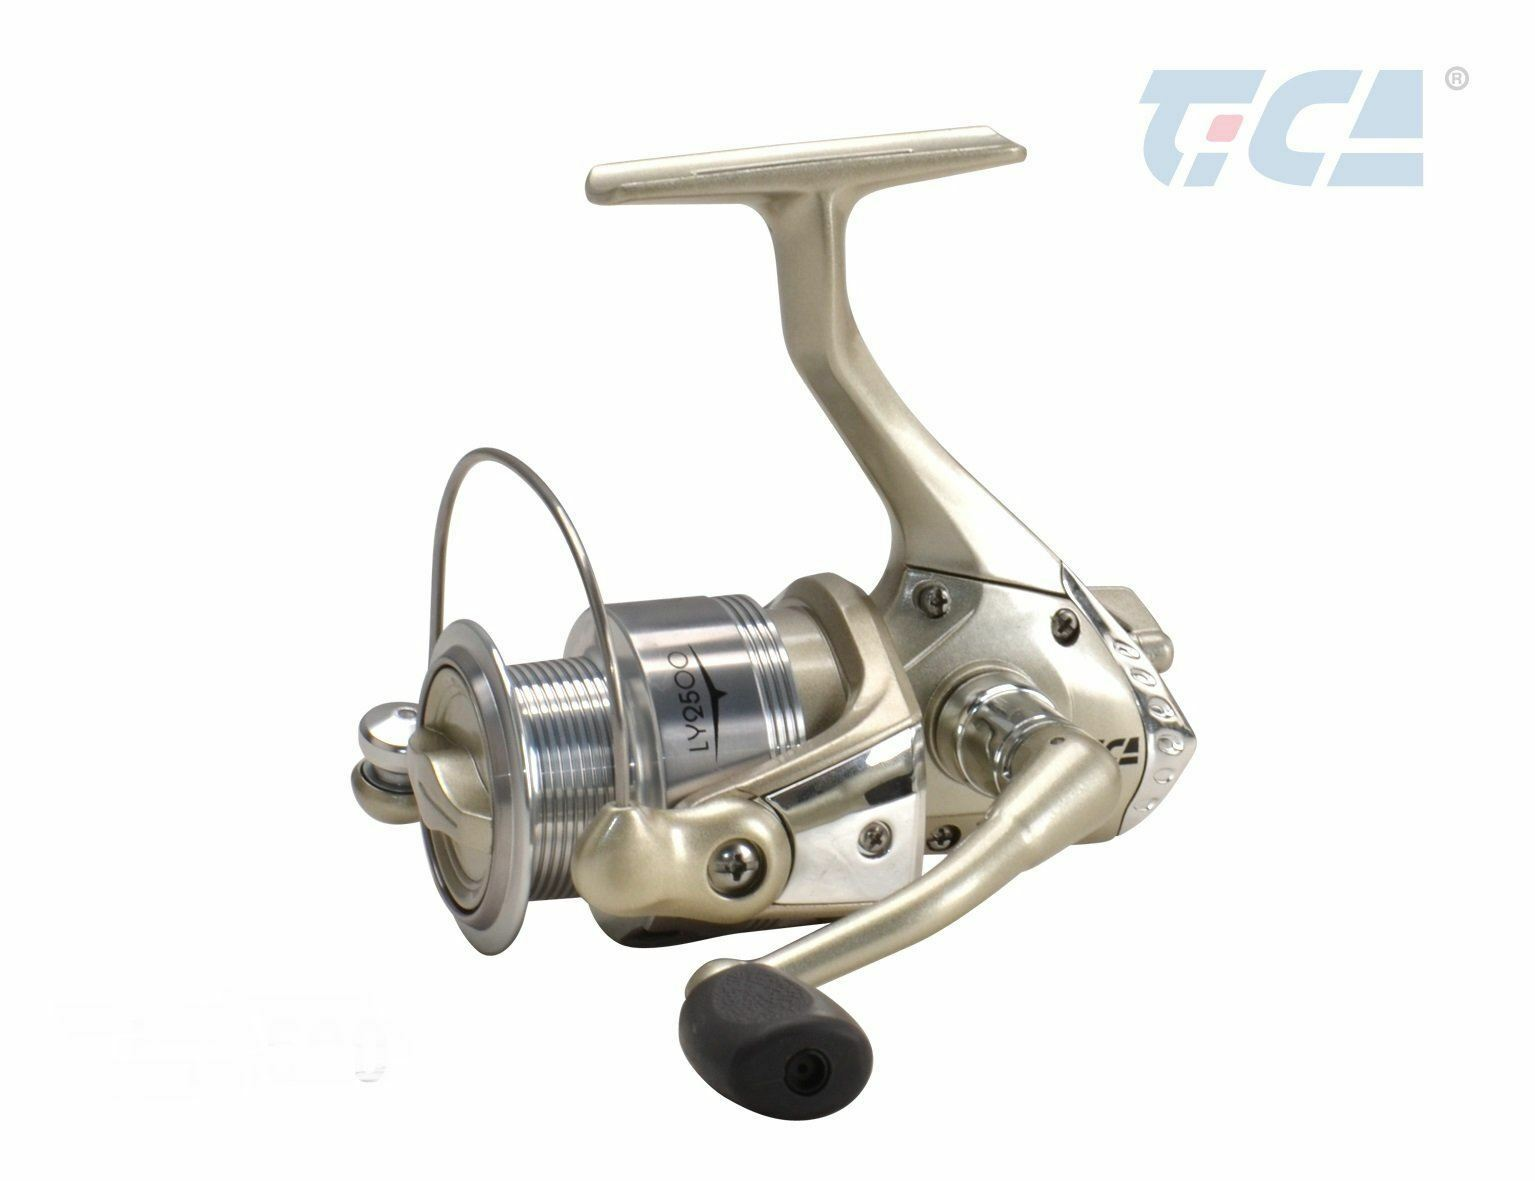 Tica Cambria Frizione Anteriore Mulinello da Spinning Spinning Spinning LY2000 - LY5000 b722f8